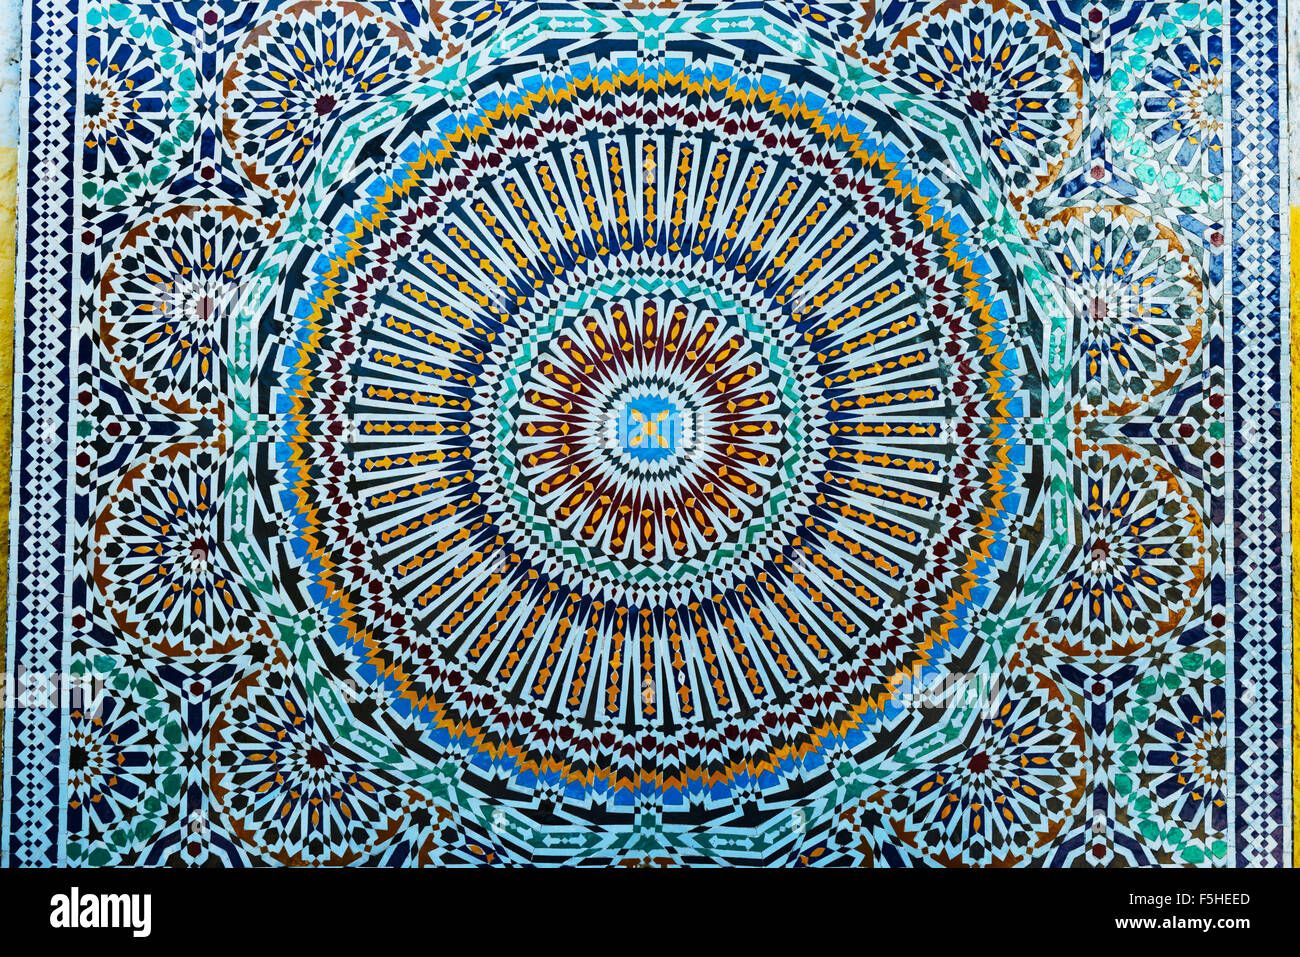 Closeup of colorful Moroccan tile-work. - Stock Image